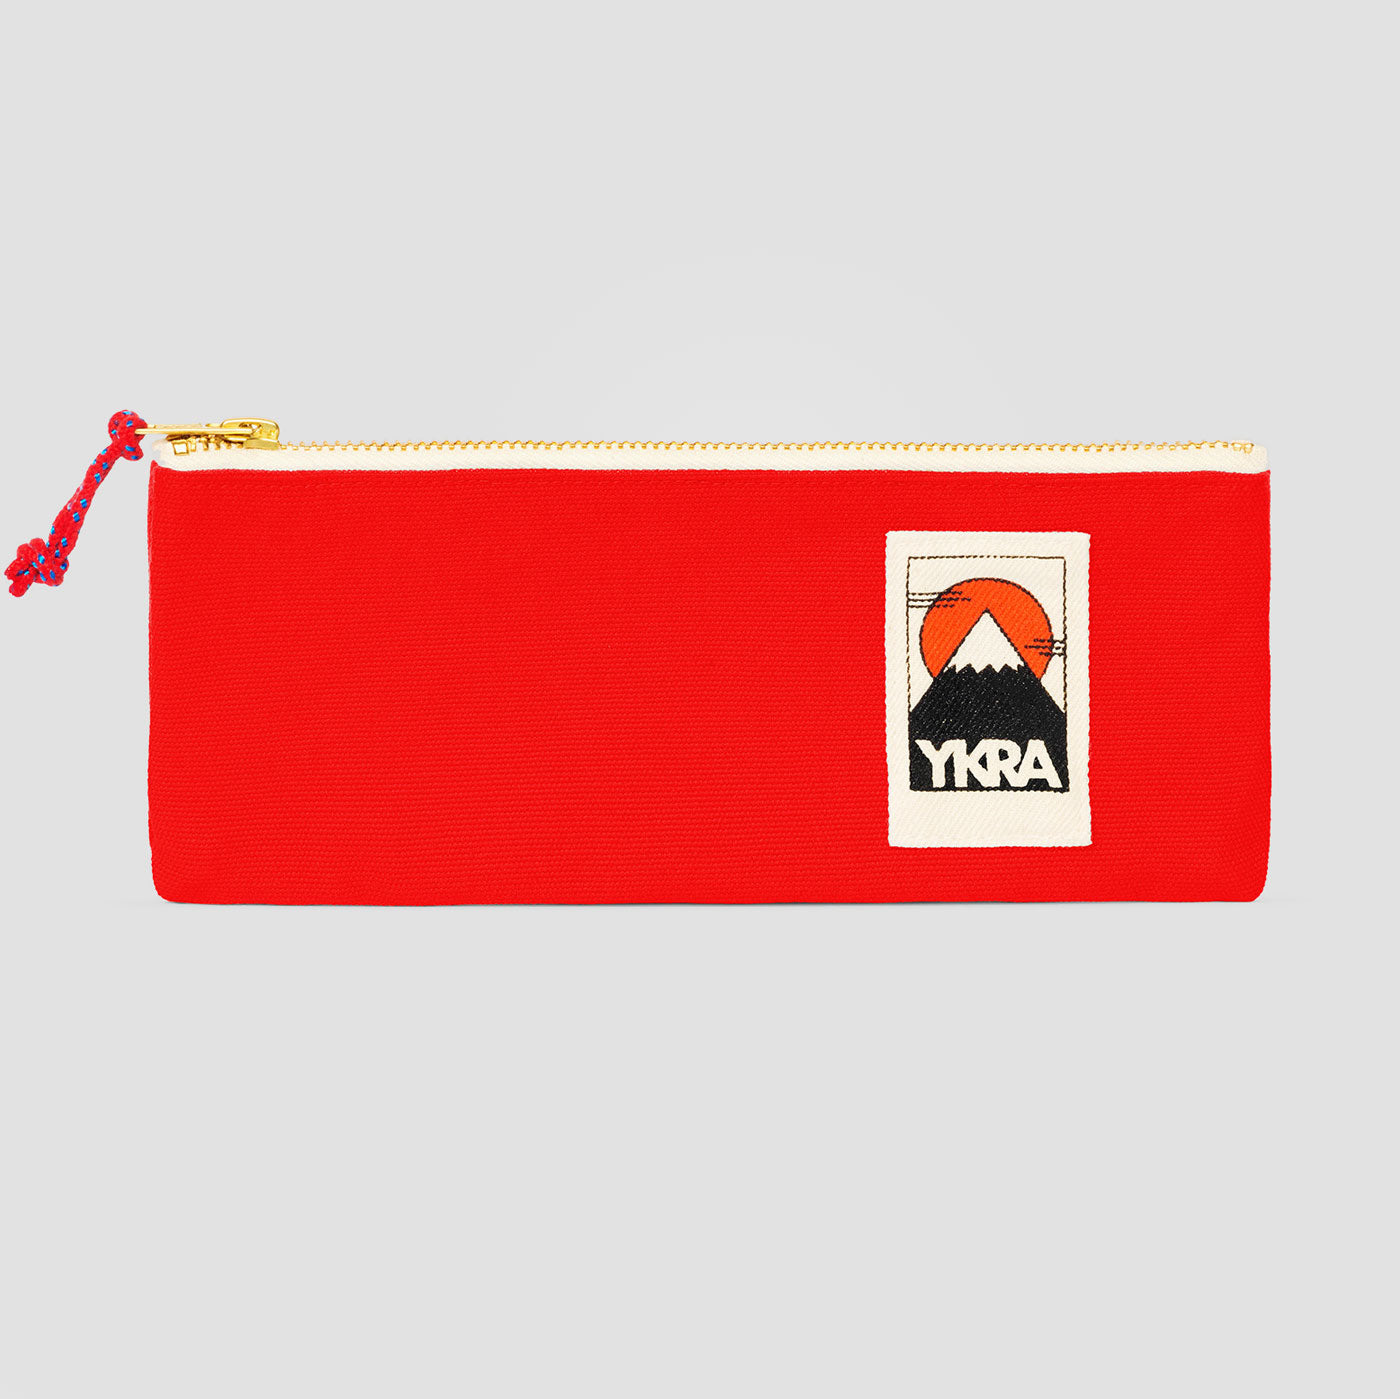 YKRA PENCIL CASE - RED